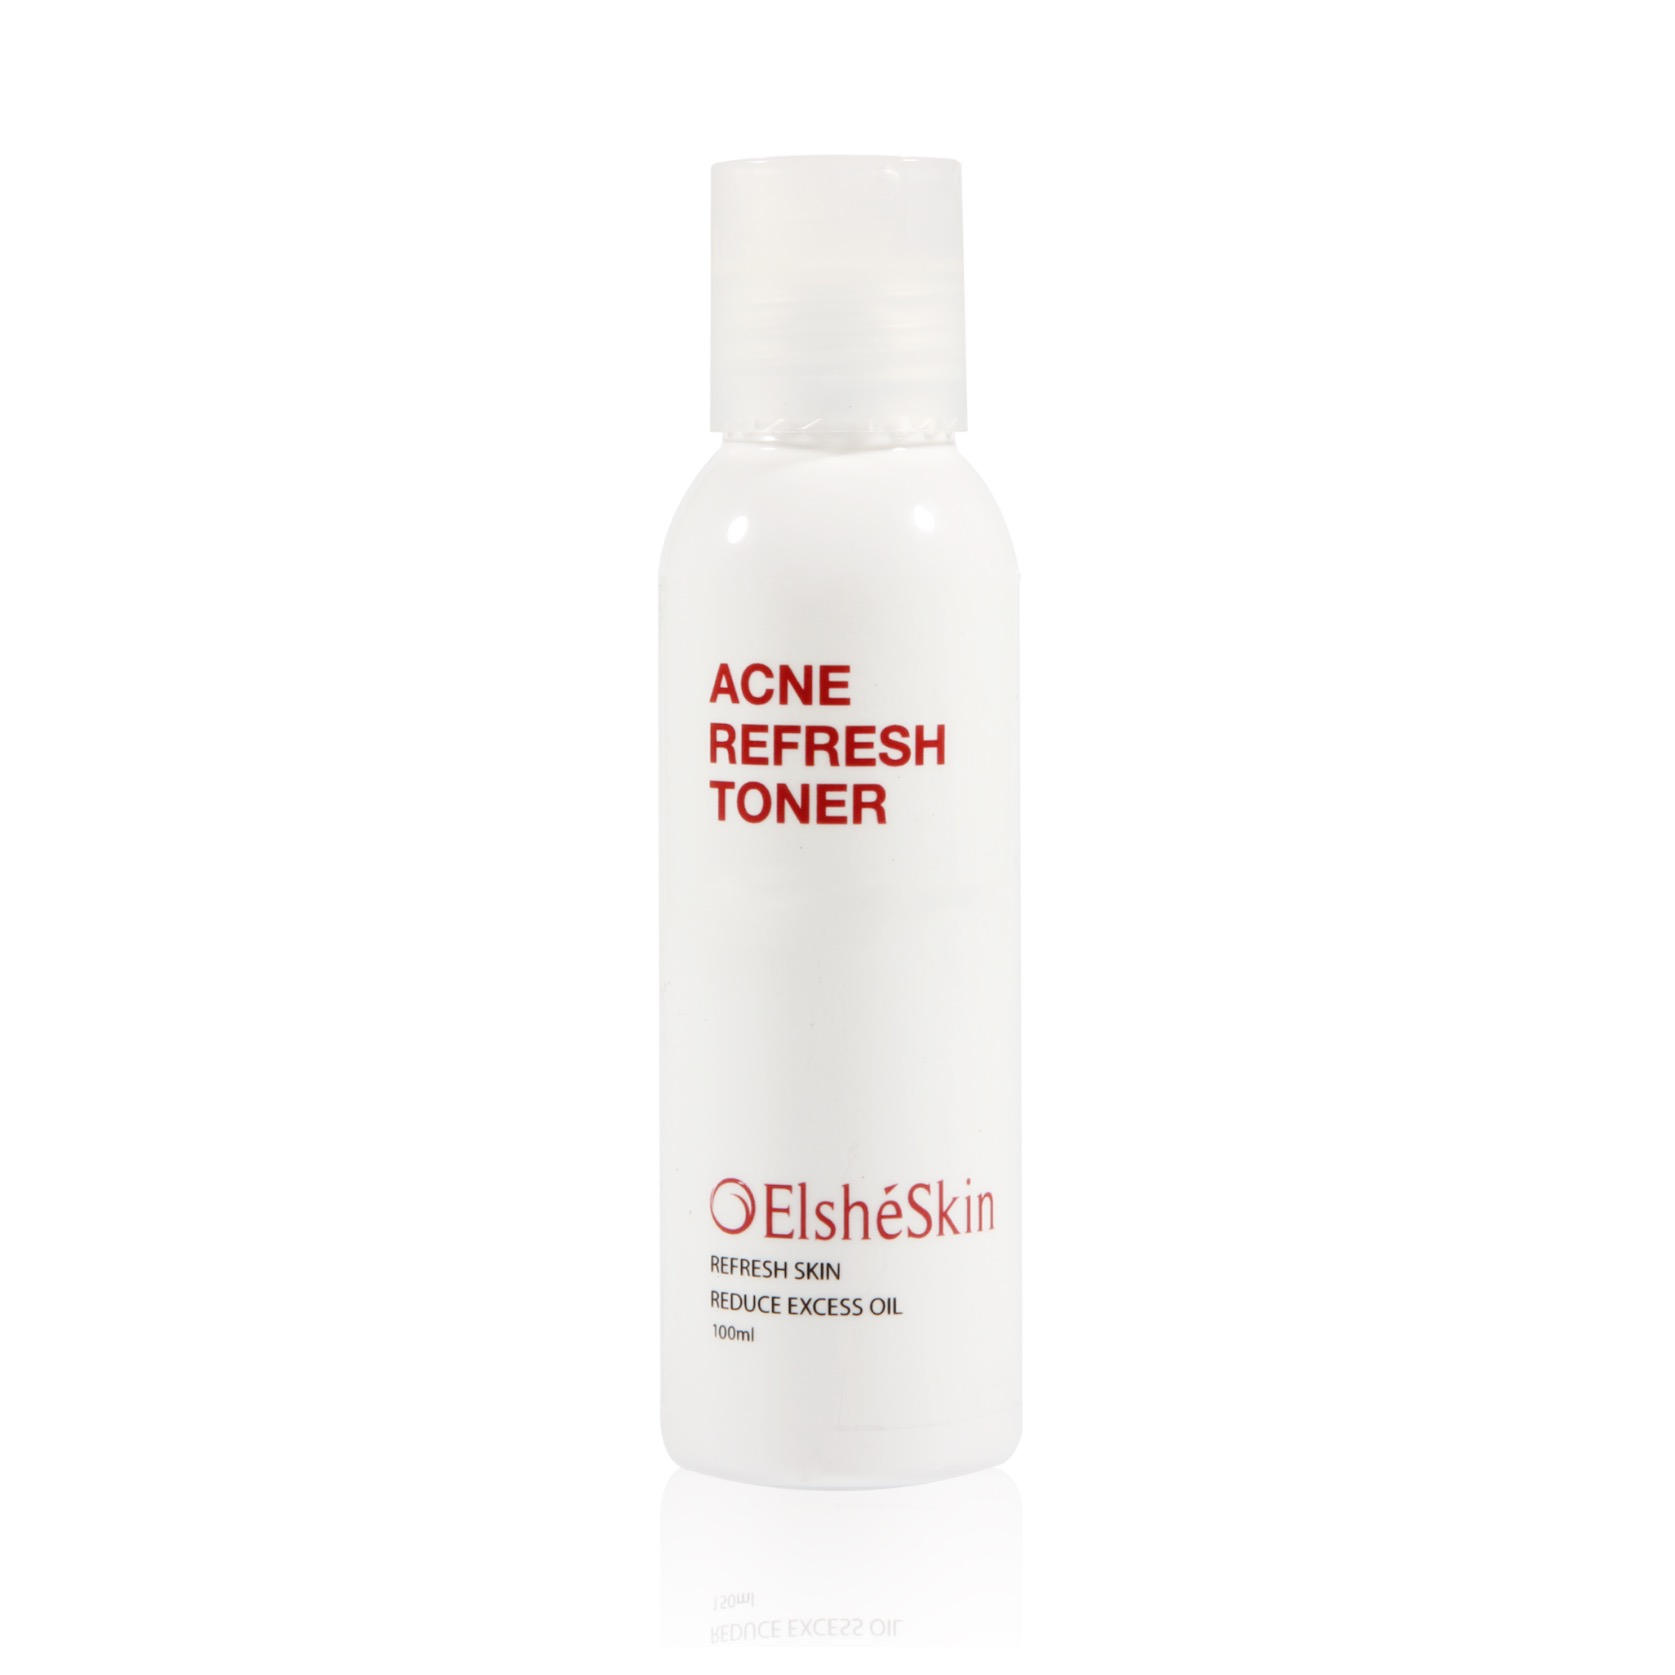 ElshéSkin Acne Refresh Toner